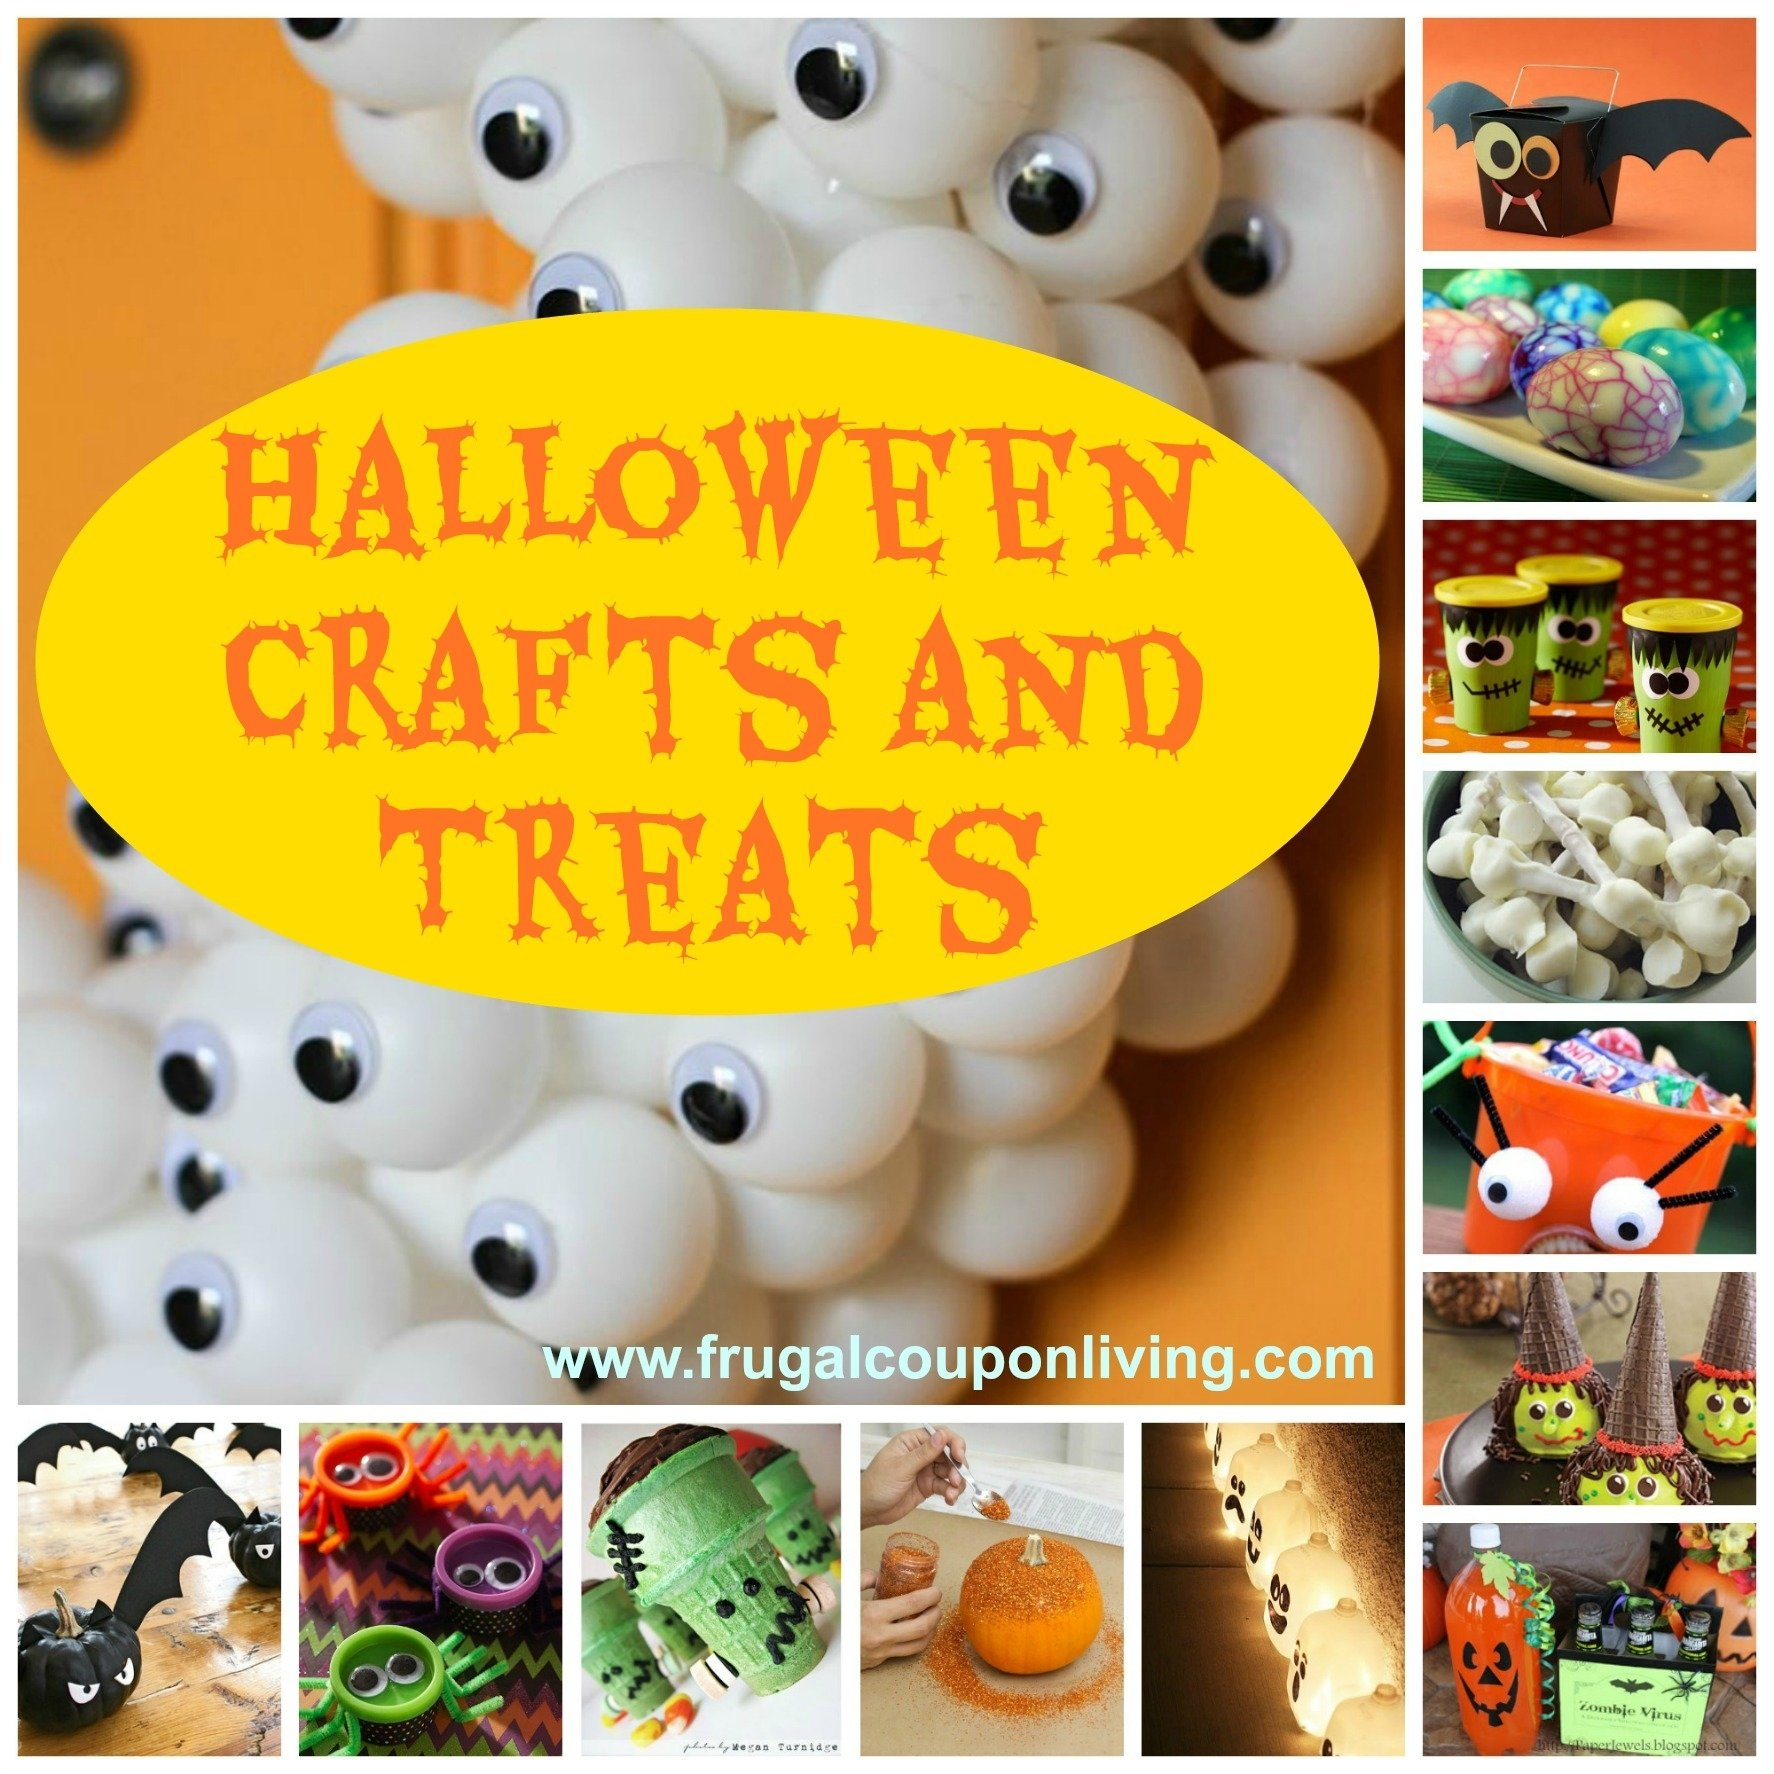 halloween craft treat ideas | fun for the kids and adults - pin now!